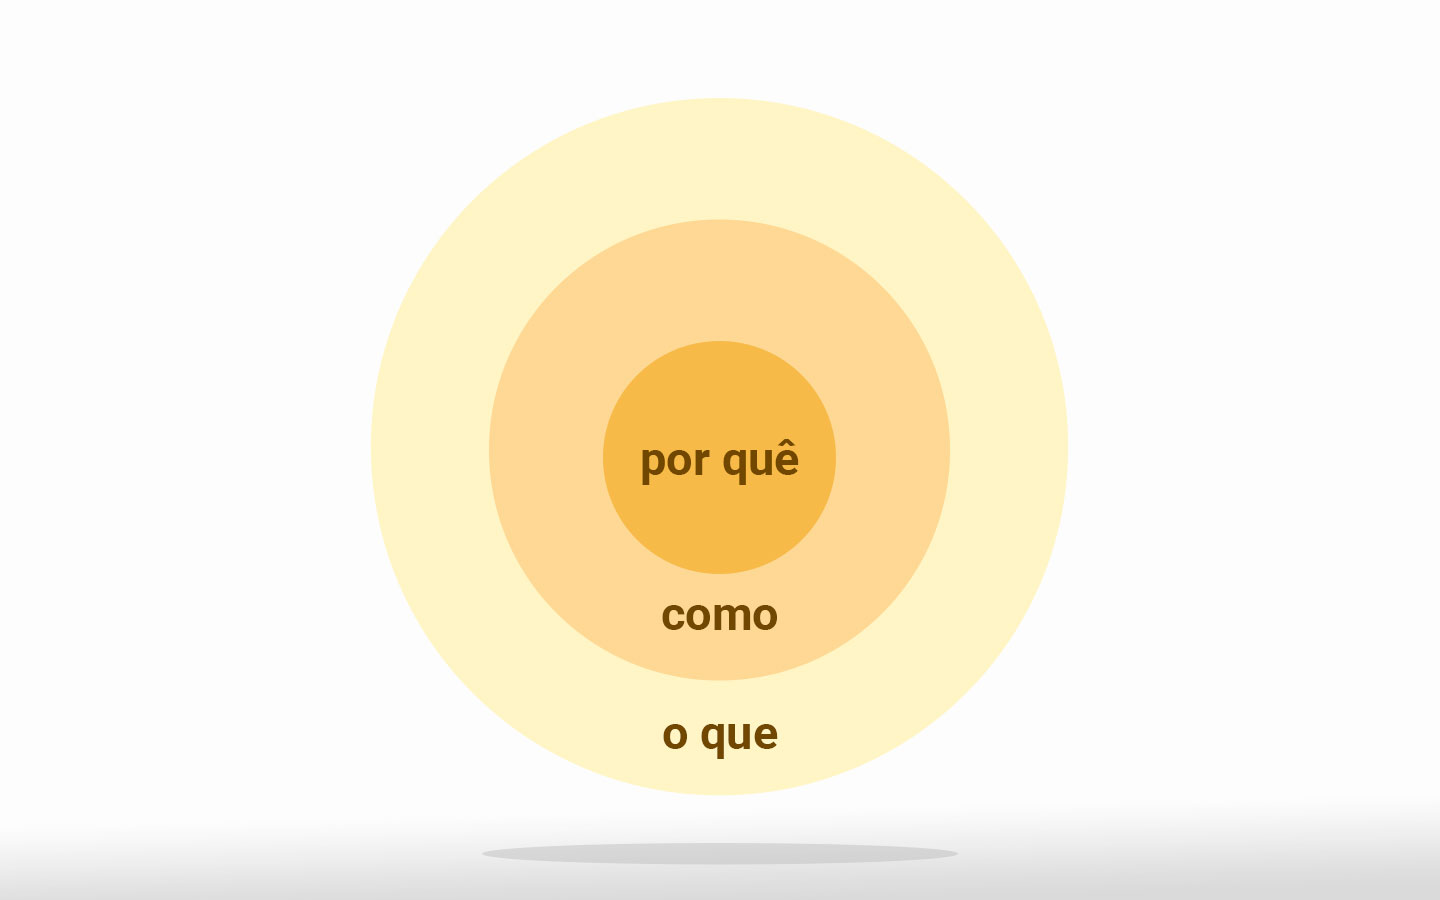 ilustracao do golden circle